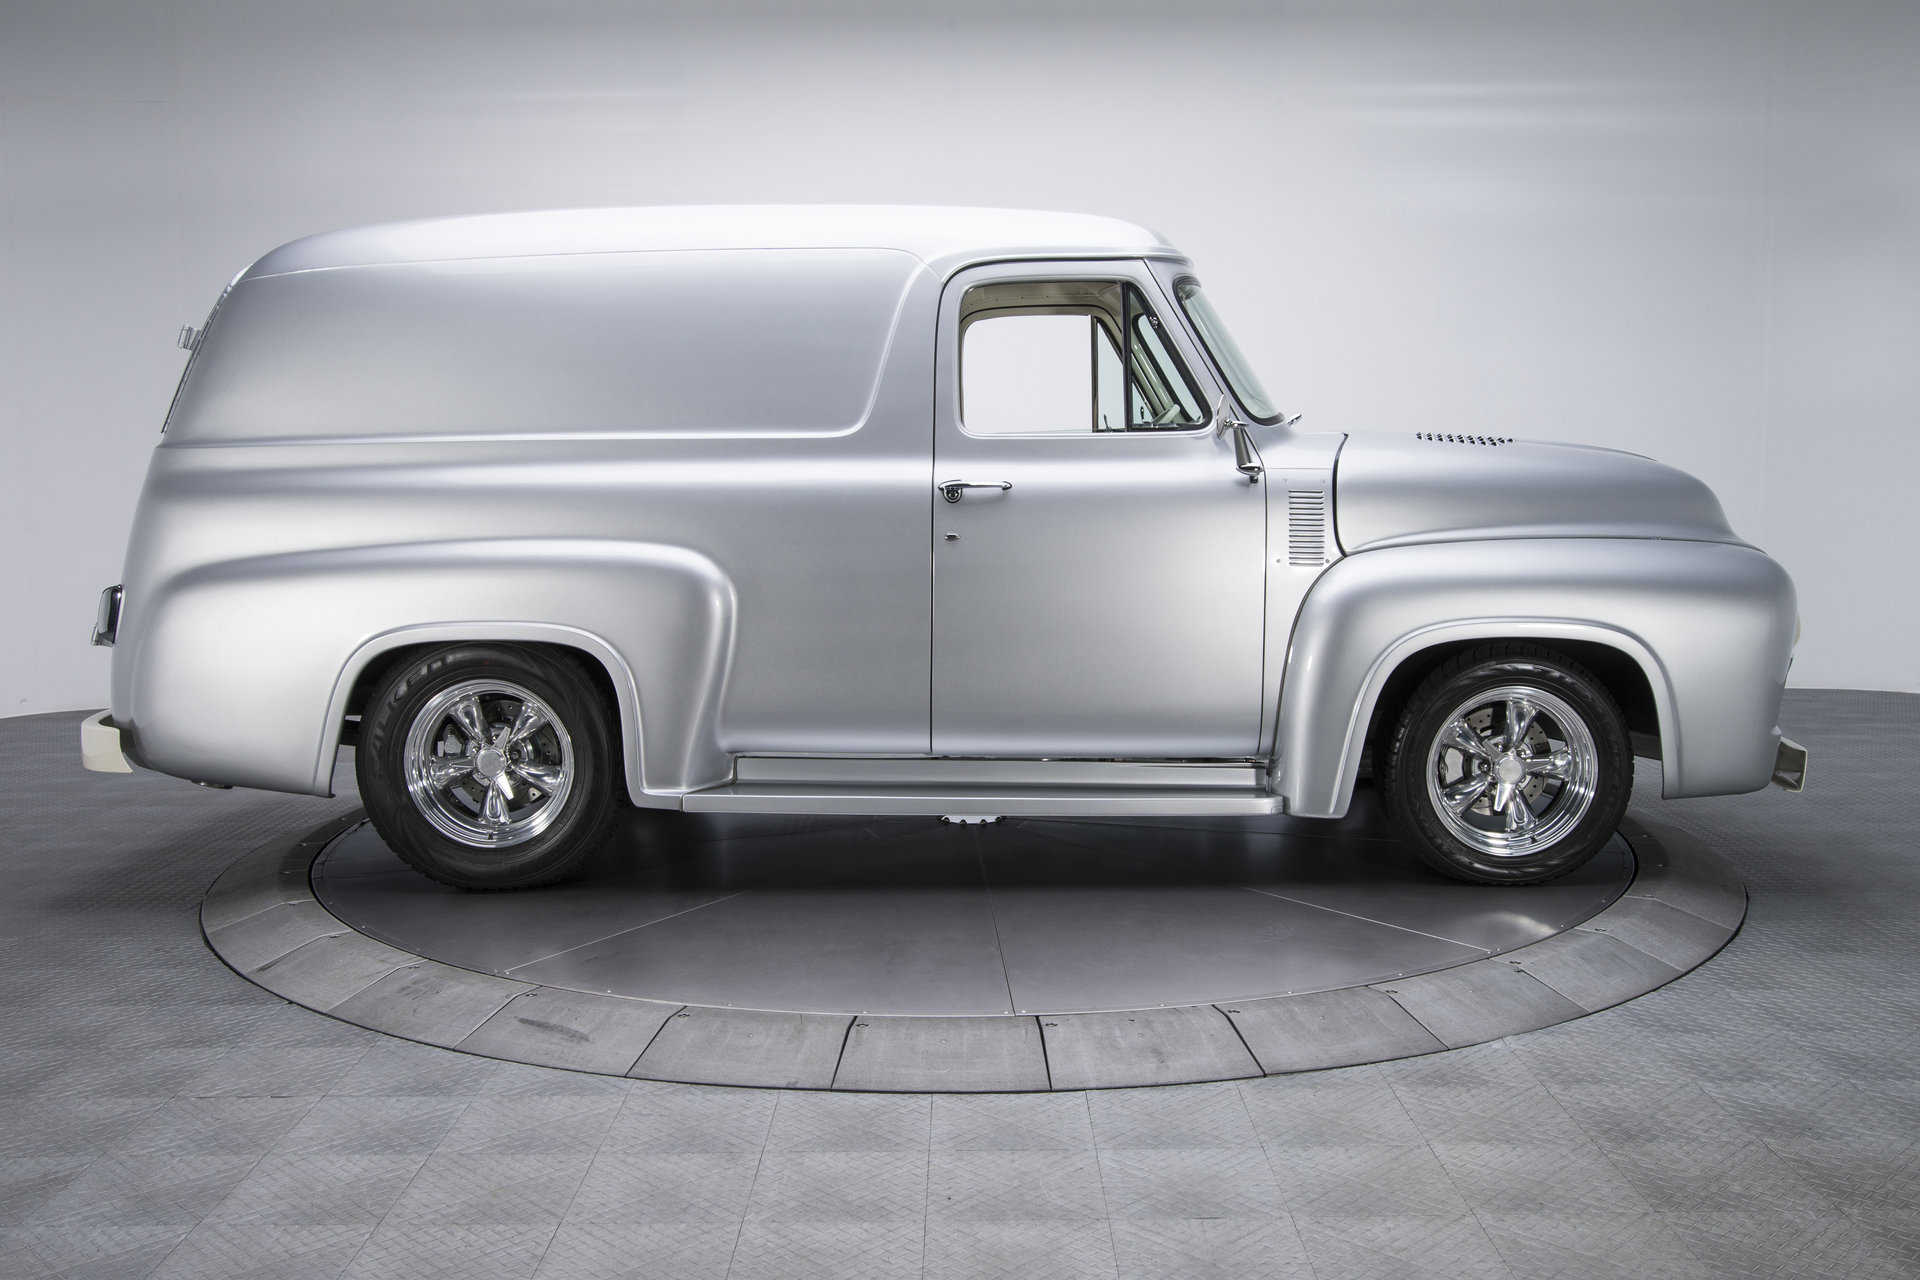 1955 Ford F100 Panel Truck For Sale 60370 Mcg Side View